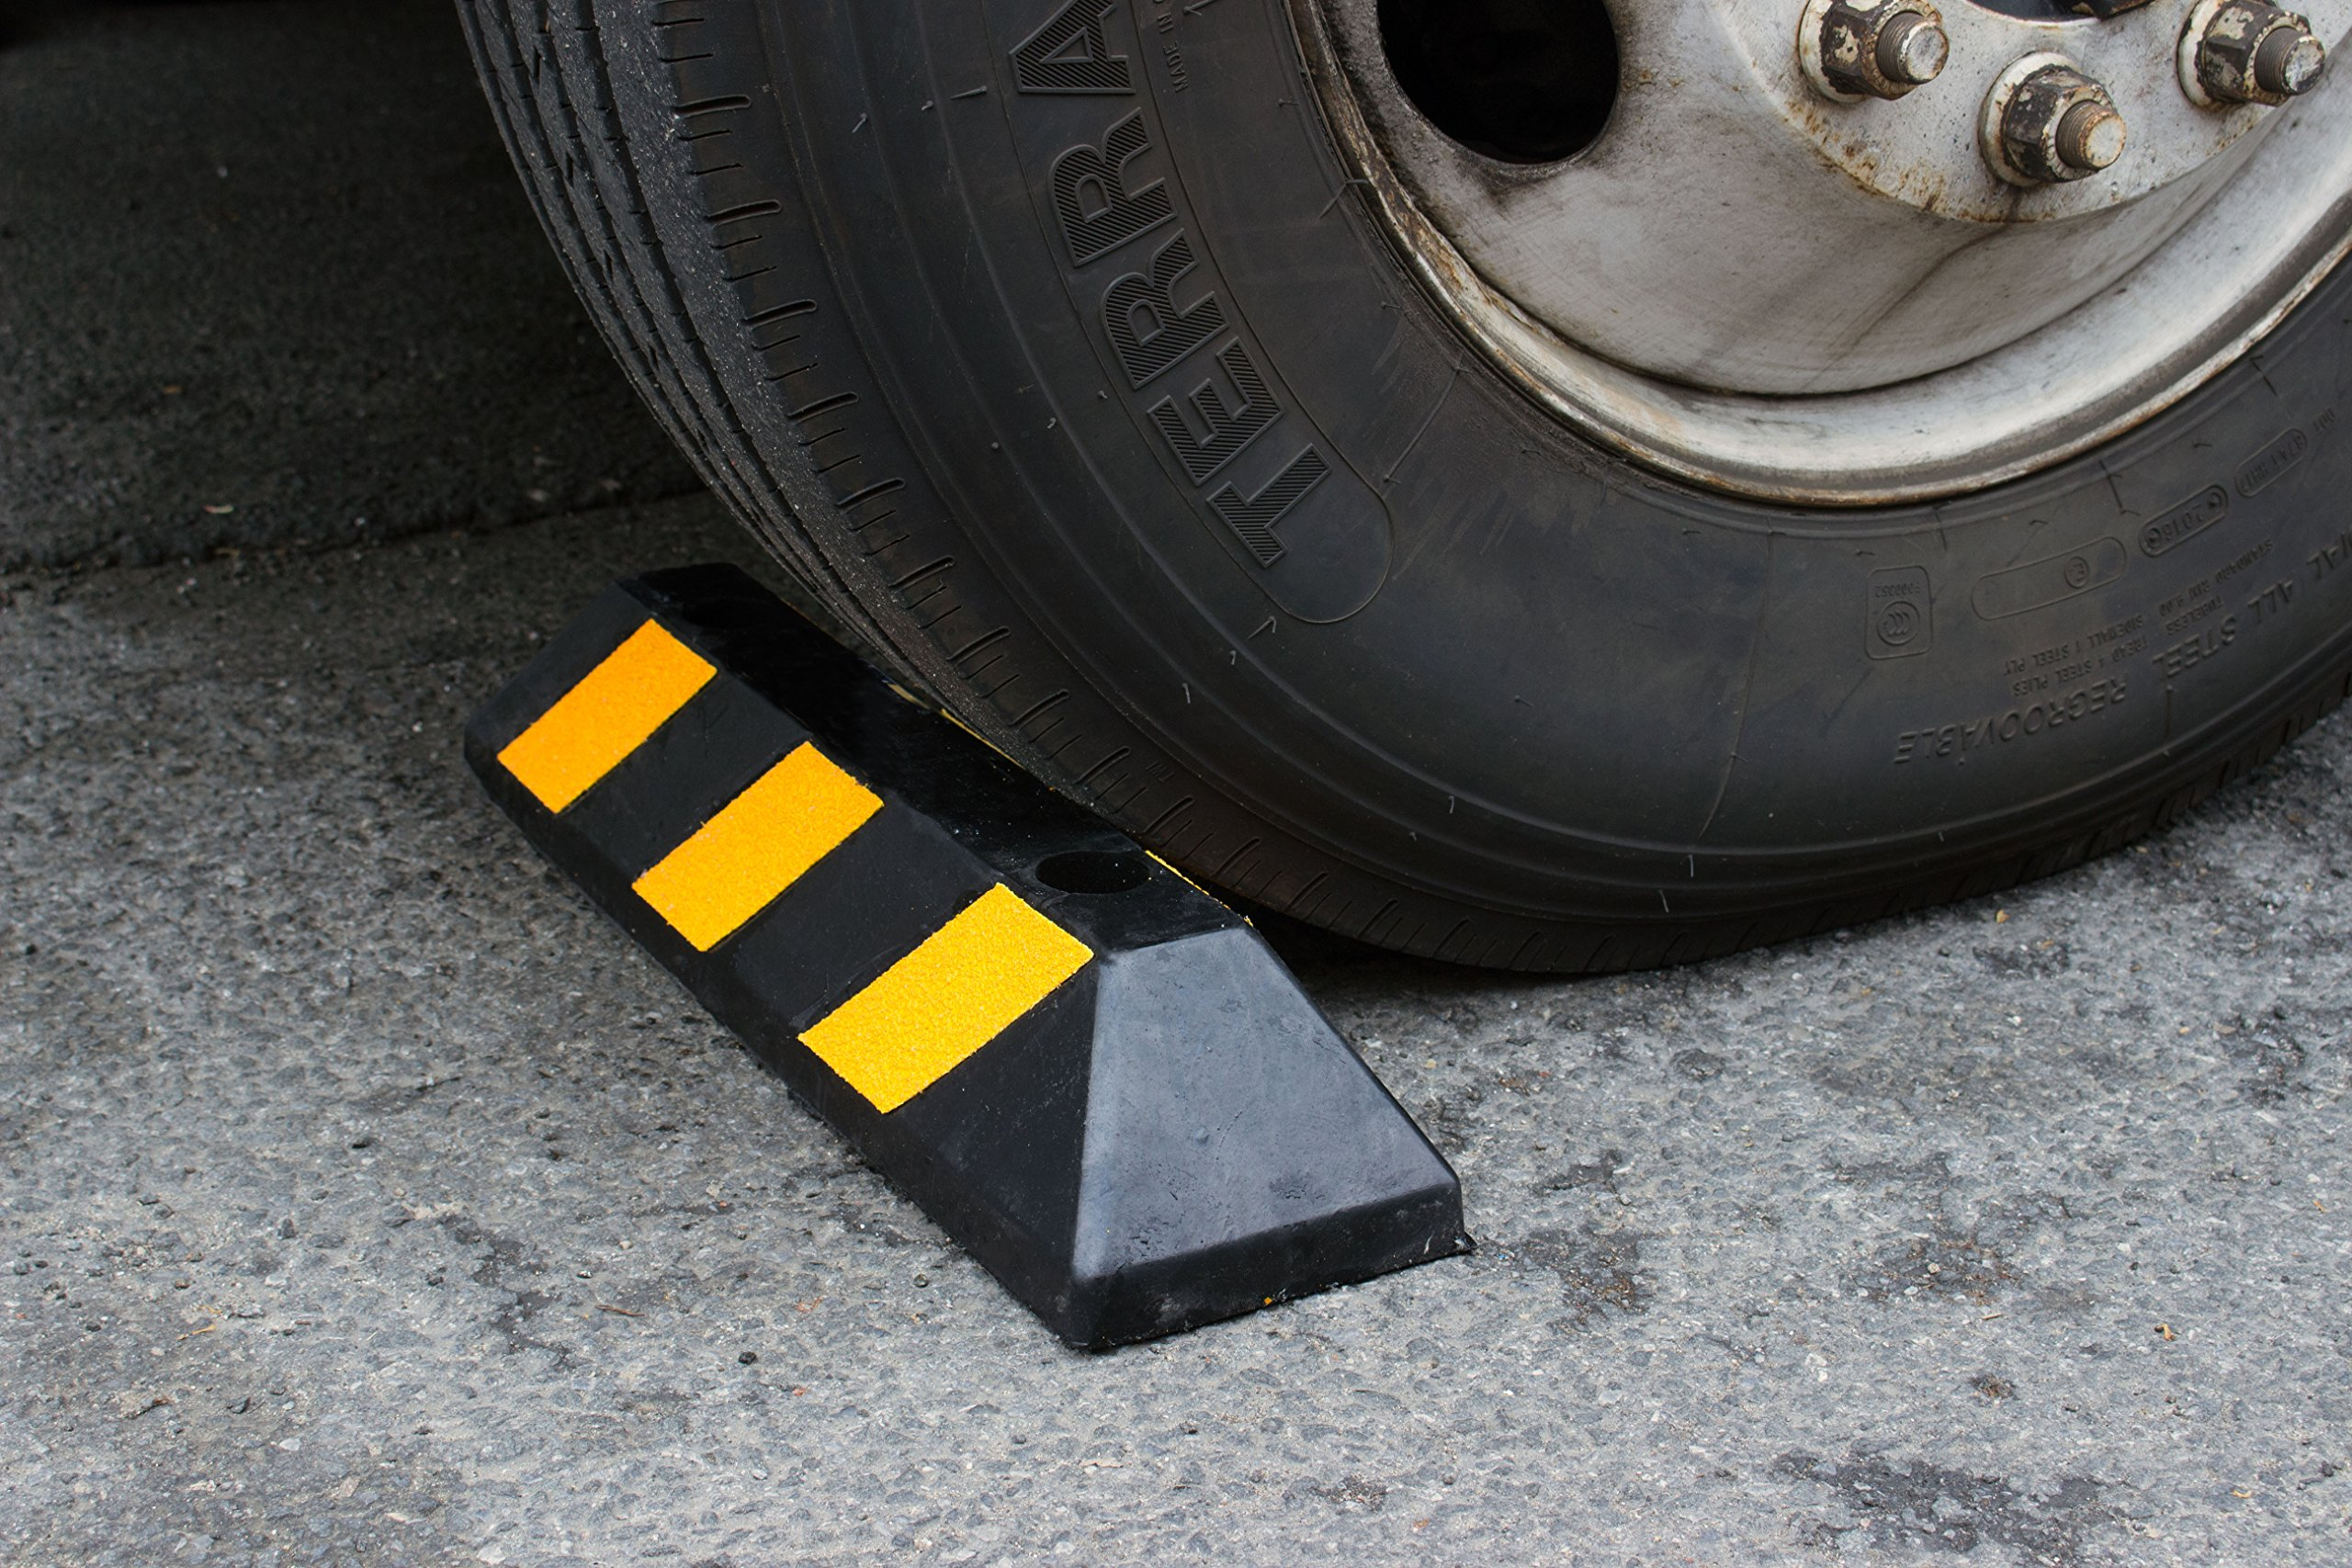 RK-BP22 Rubber Curb Truck Parking Block, 22 -Inch by RK (Image #7)